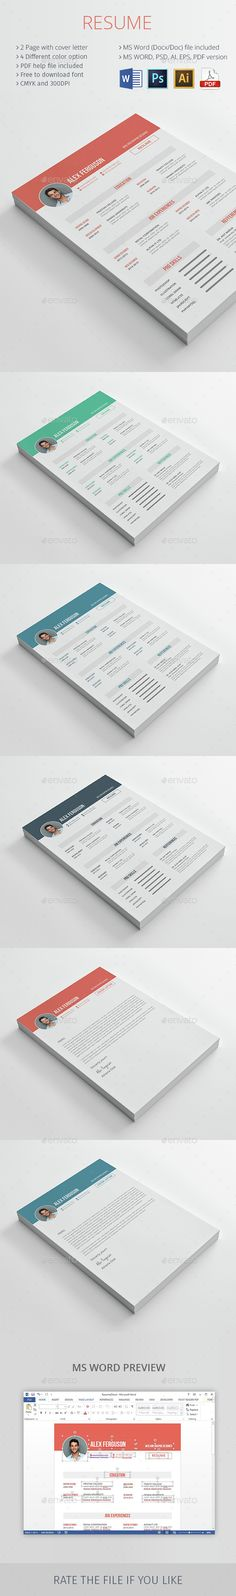 Awesome 15+ Best Free Resume   CV Templates PSD Professionally - simple professional resume template